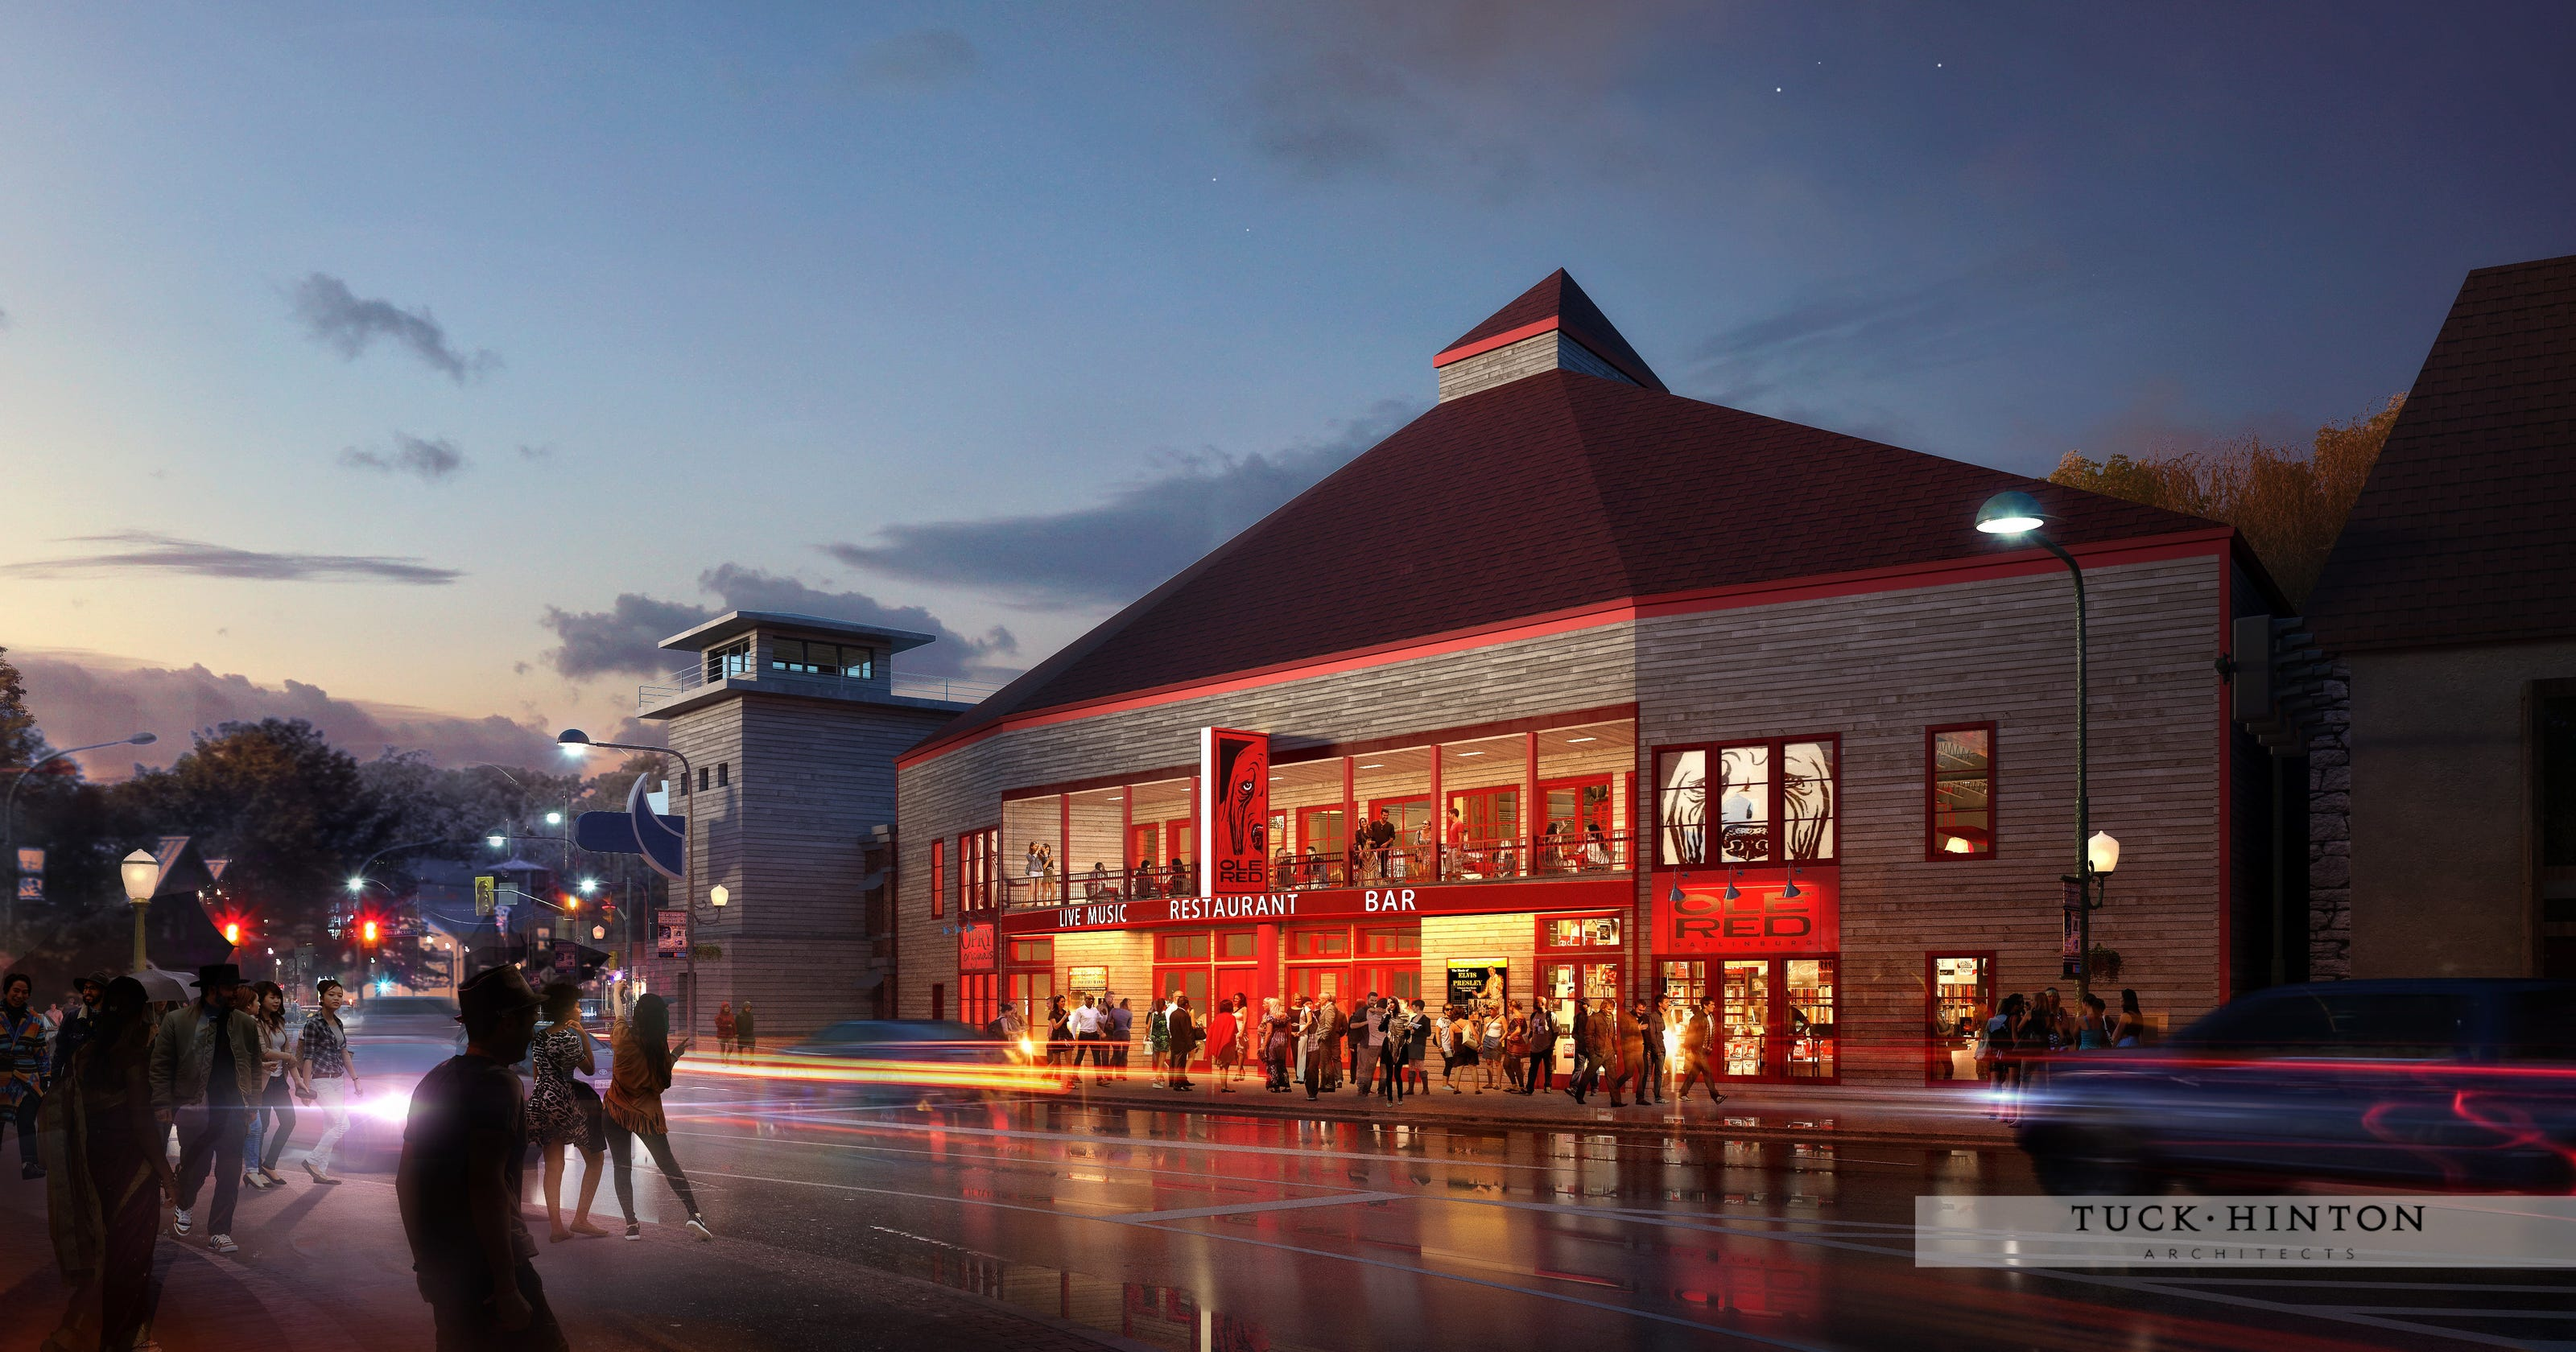 Blake Shelton Ryman To Open Ole Red Venue In Gatlinburg